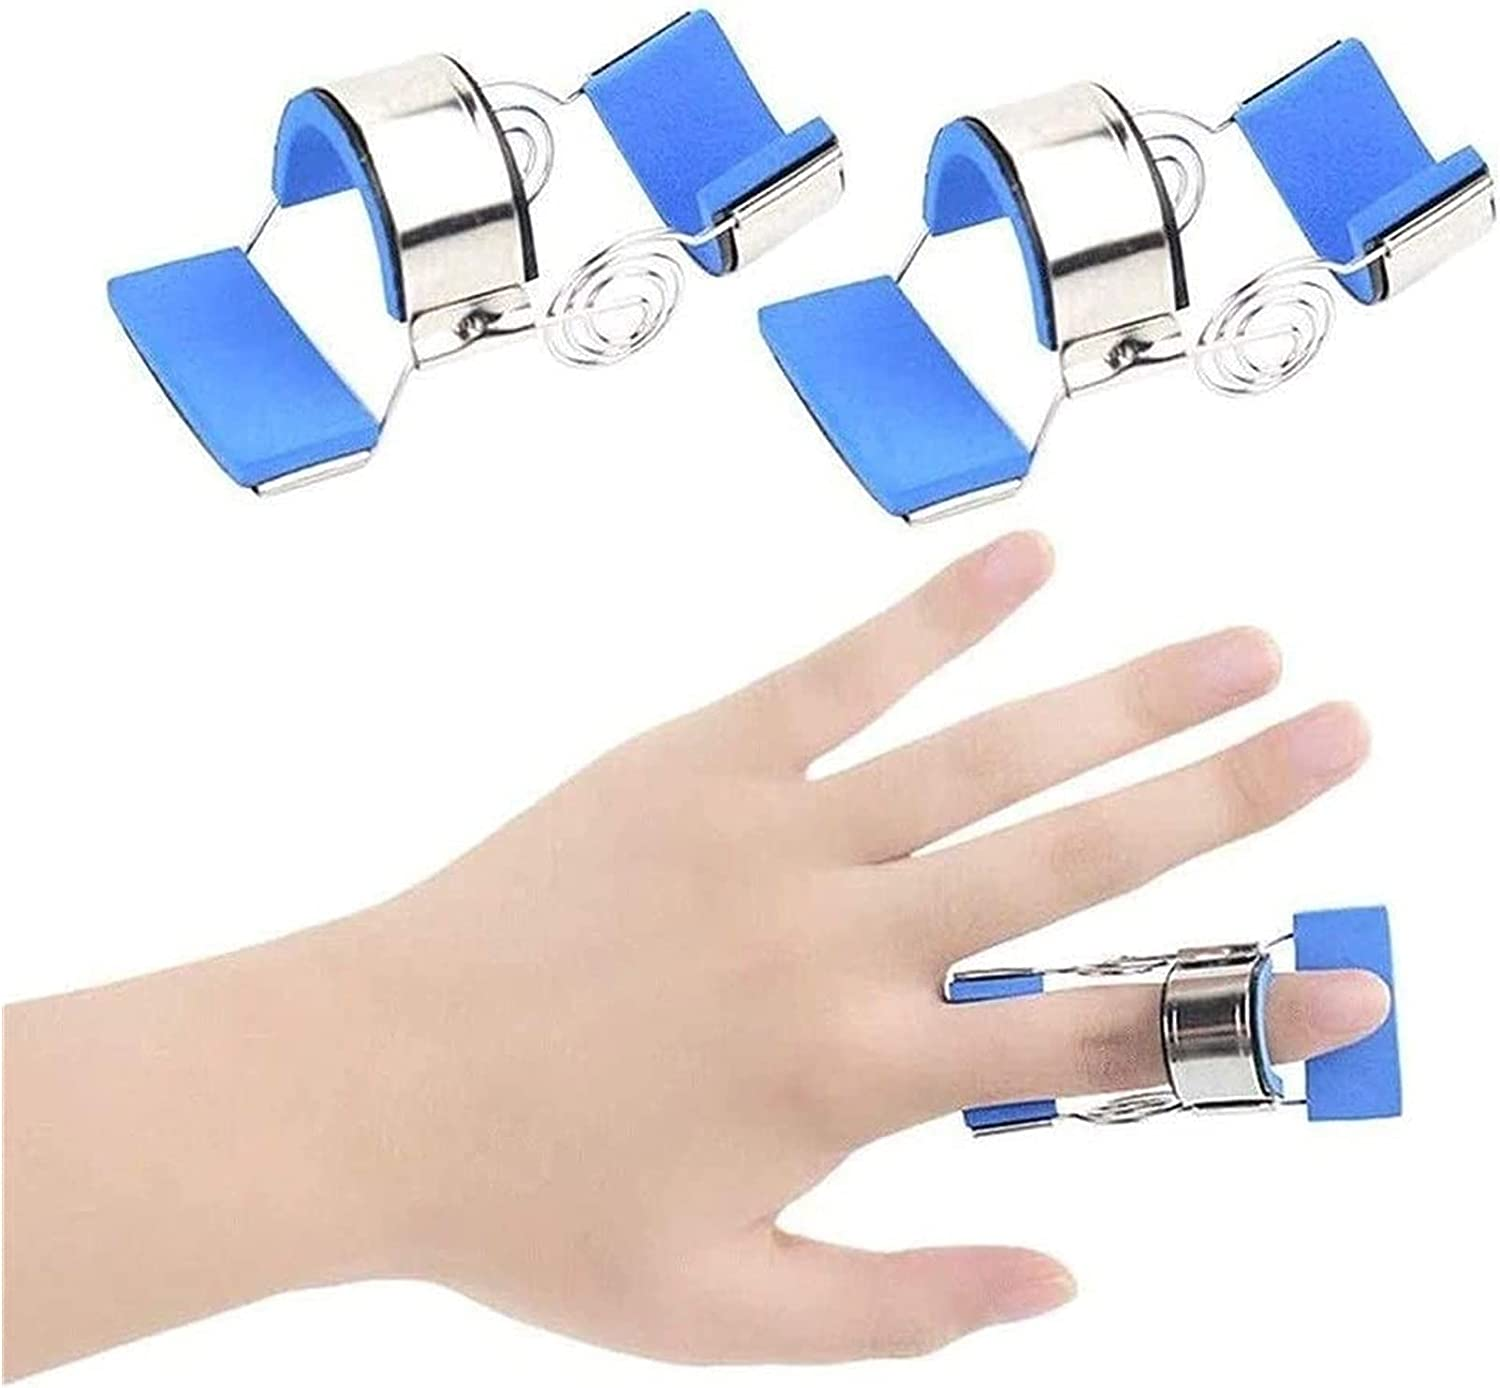 Finger separator Contracture Splin trend rank Special price Dynamic Cushion